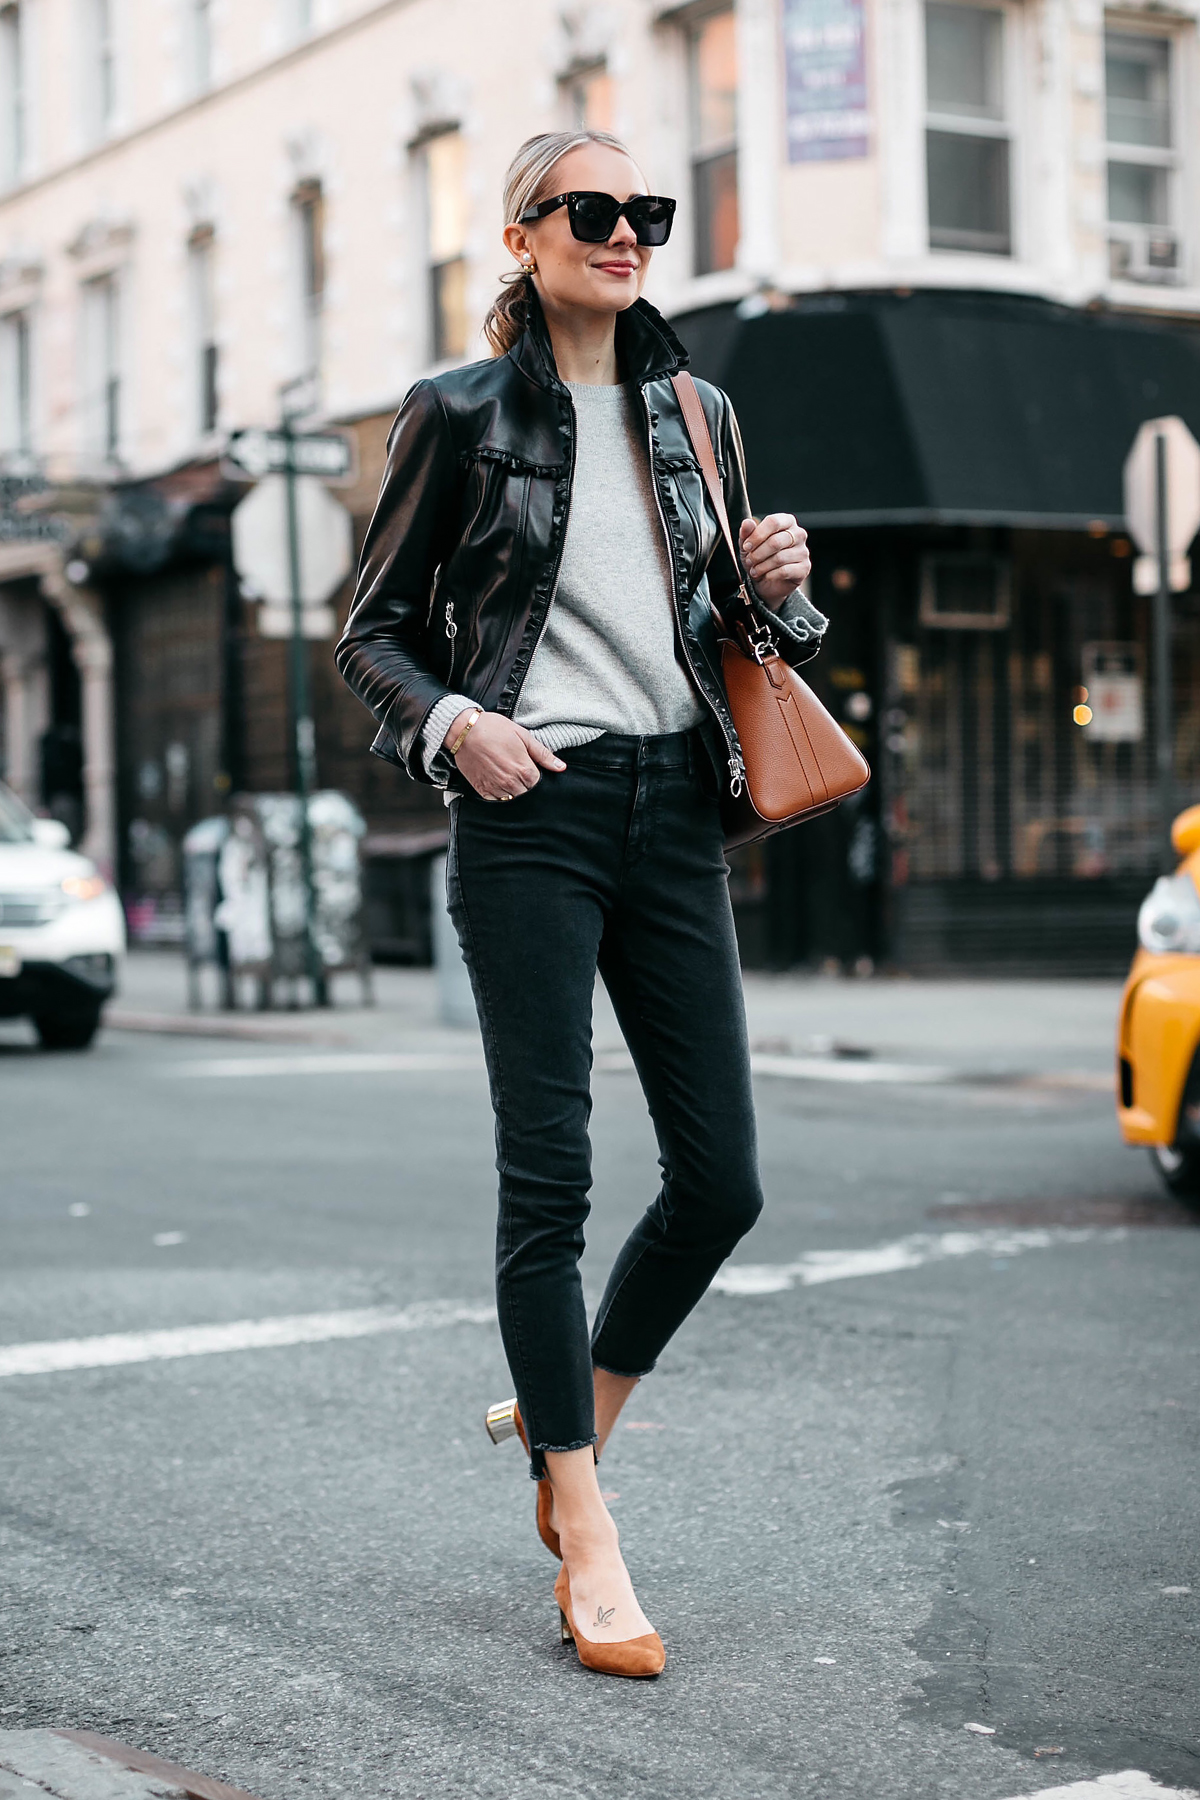 Blonde Woman Wearing Ann Taylor Black Leather Jacket Grey Sweater Black Skinny Jeans Tan Pumps Fashion Jackson Dallas Blogger Fashion Blogger Street Style New York Fashion Week